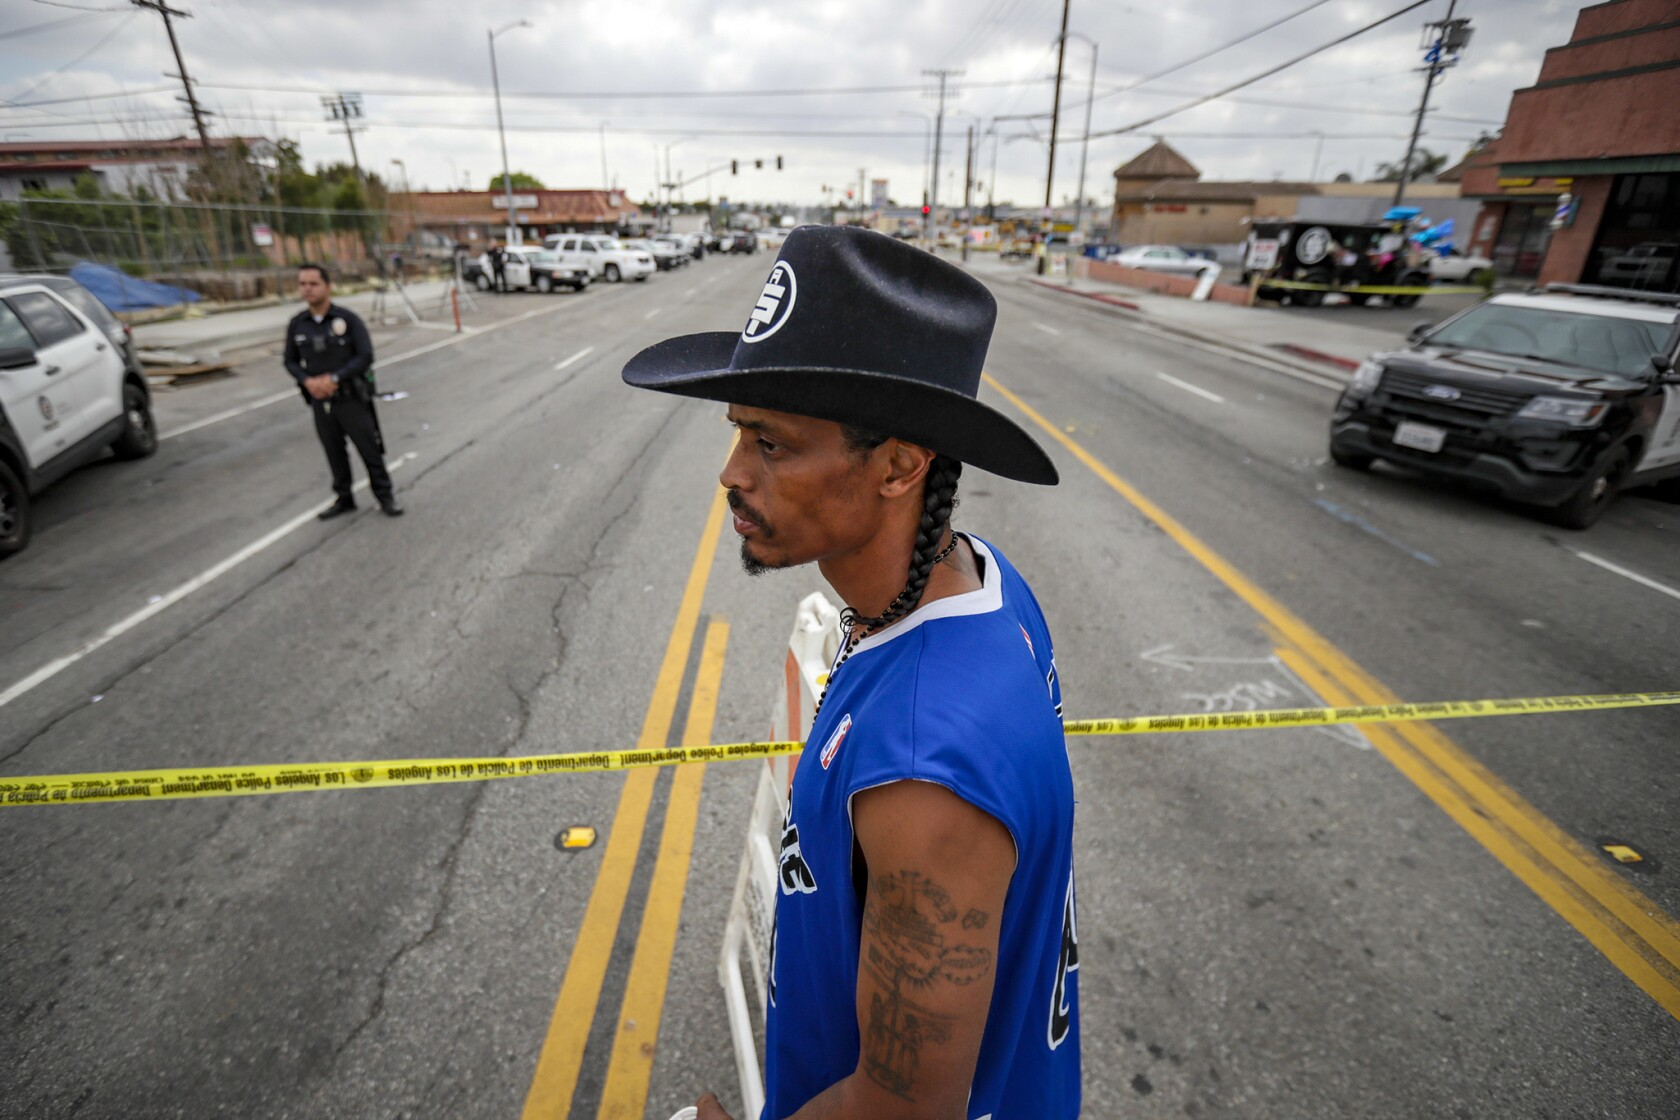 Killing of Nipsey Hussle in South L A  likely has some ties to gangs